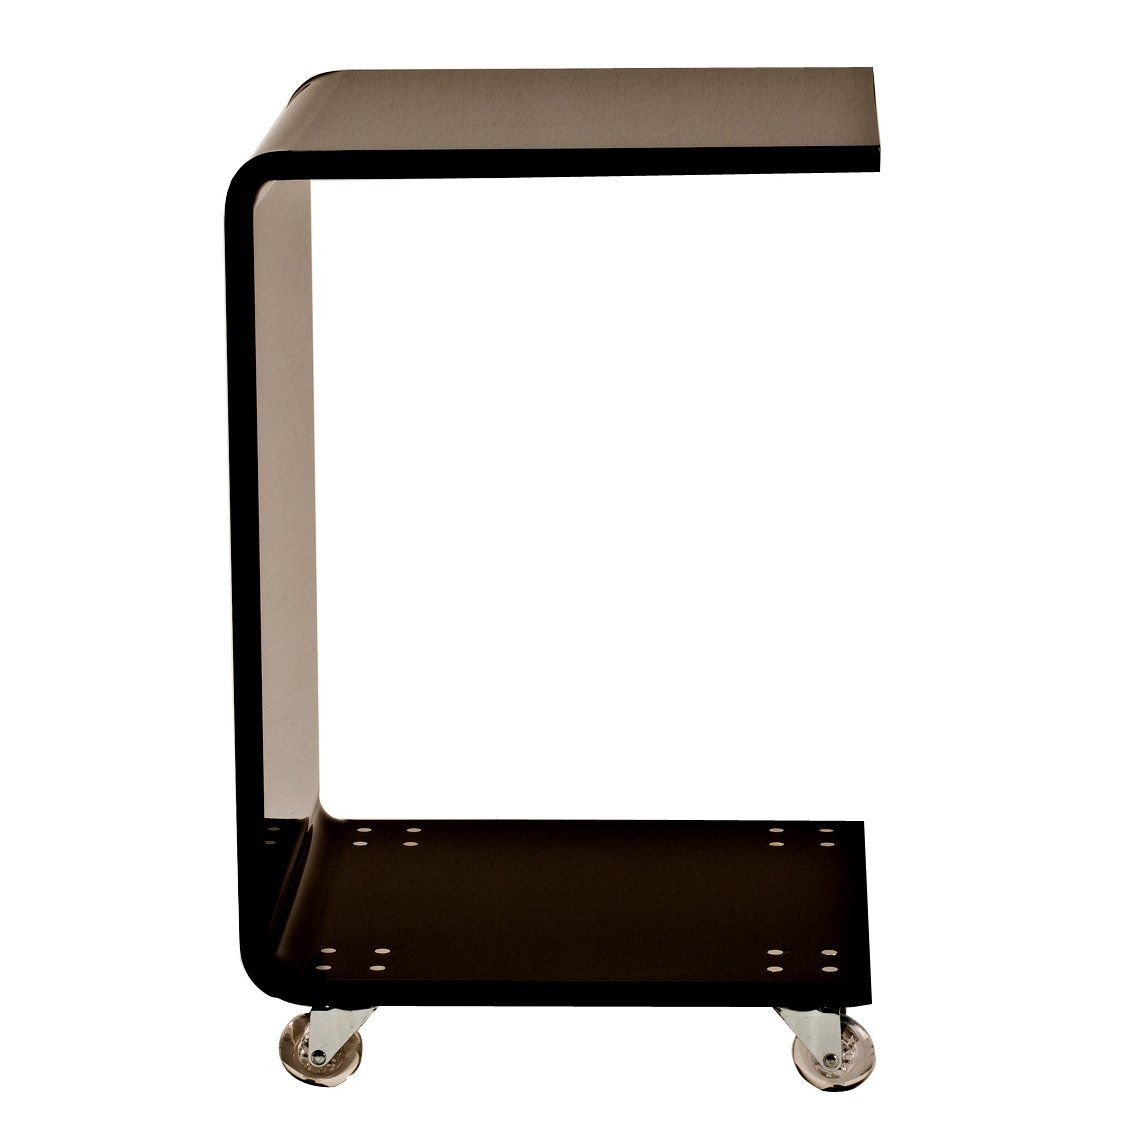 shape acrylic accent table free shipping today ashley leather furniture for lamp farmhouse style kitchen chairs top trundle rose gold cherry brown coffee sofa beach themed